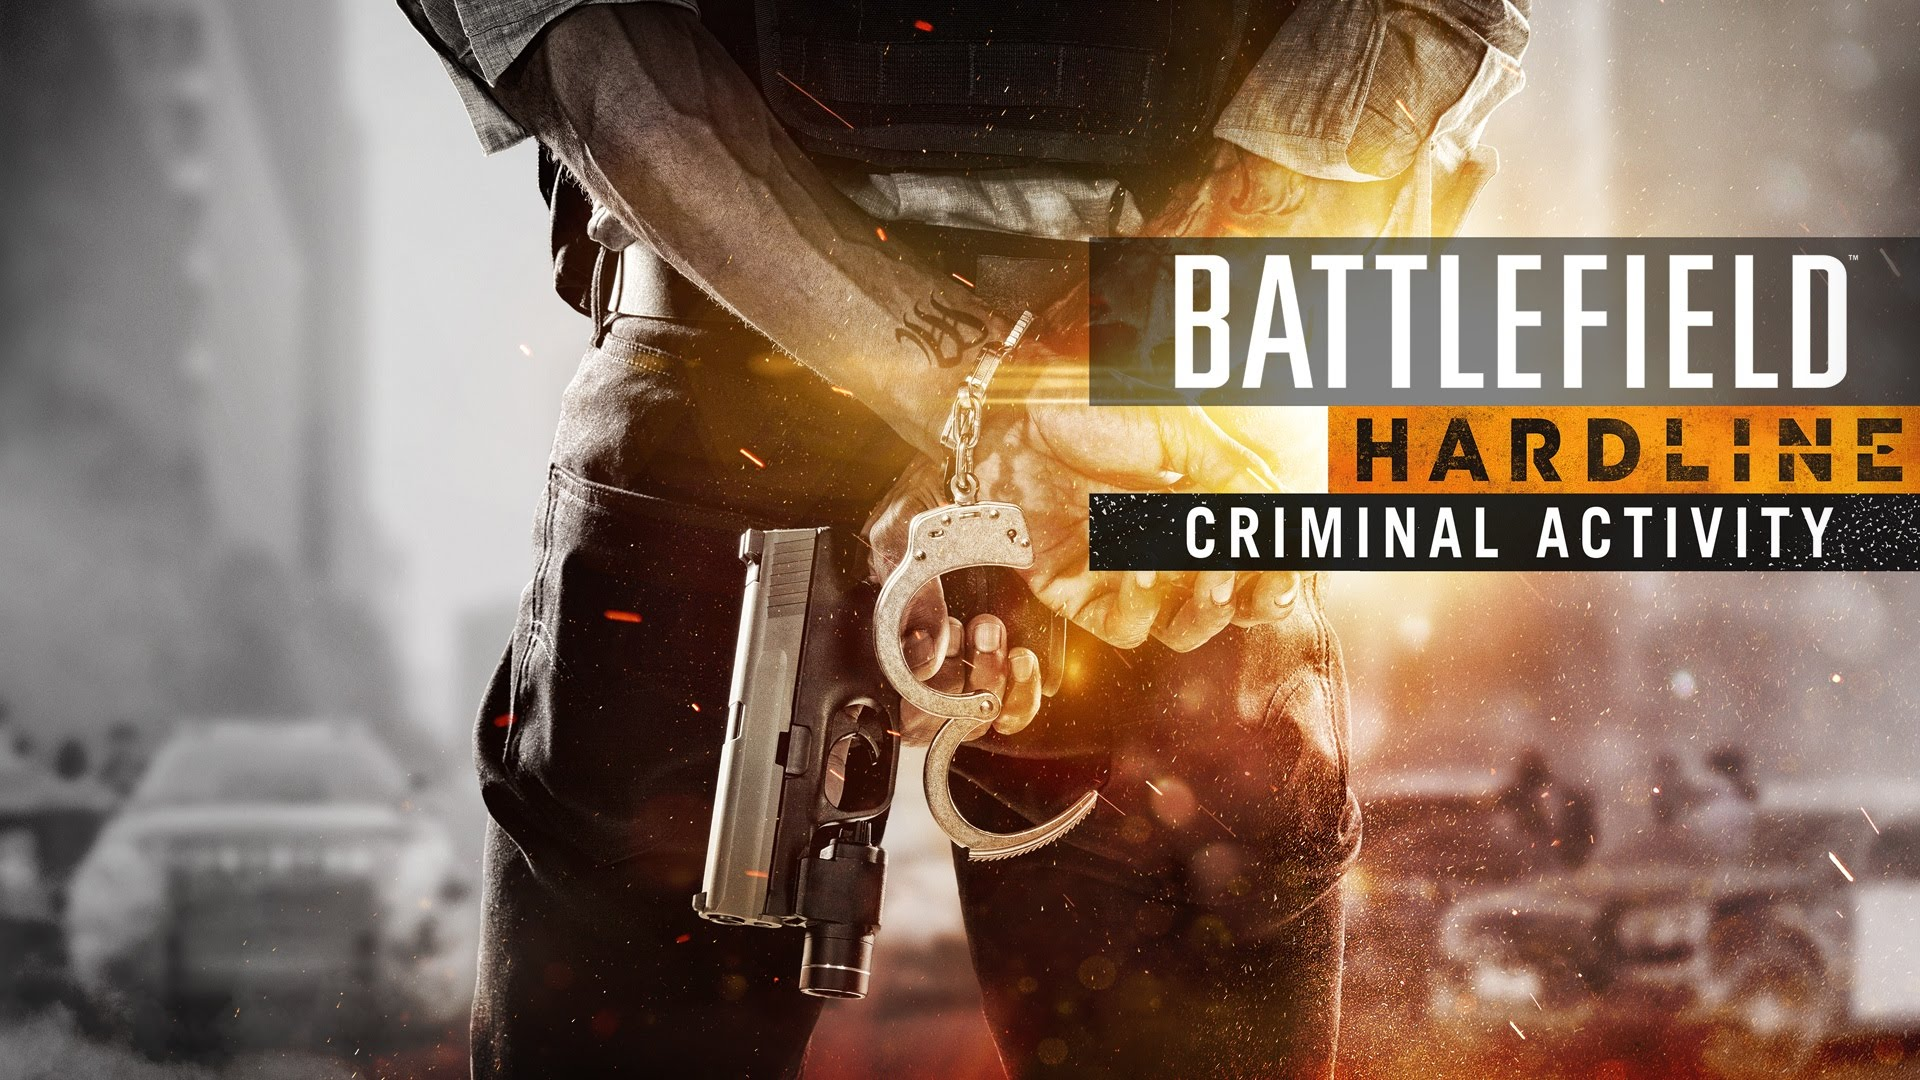 1432659279-battlefield-hardline-criminal-activity